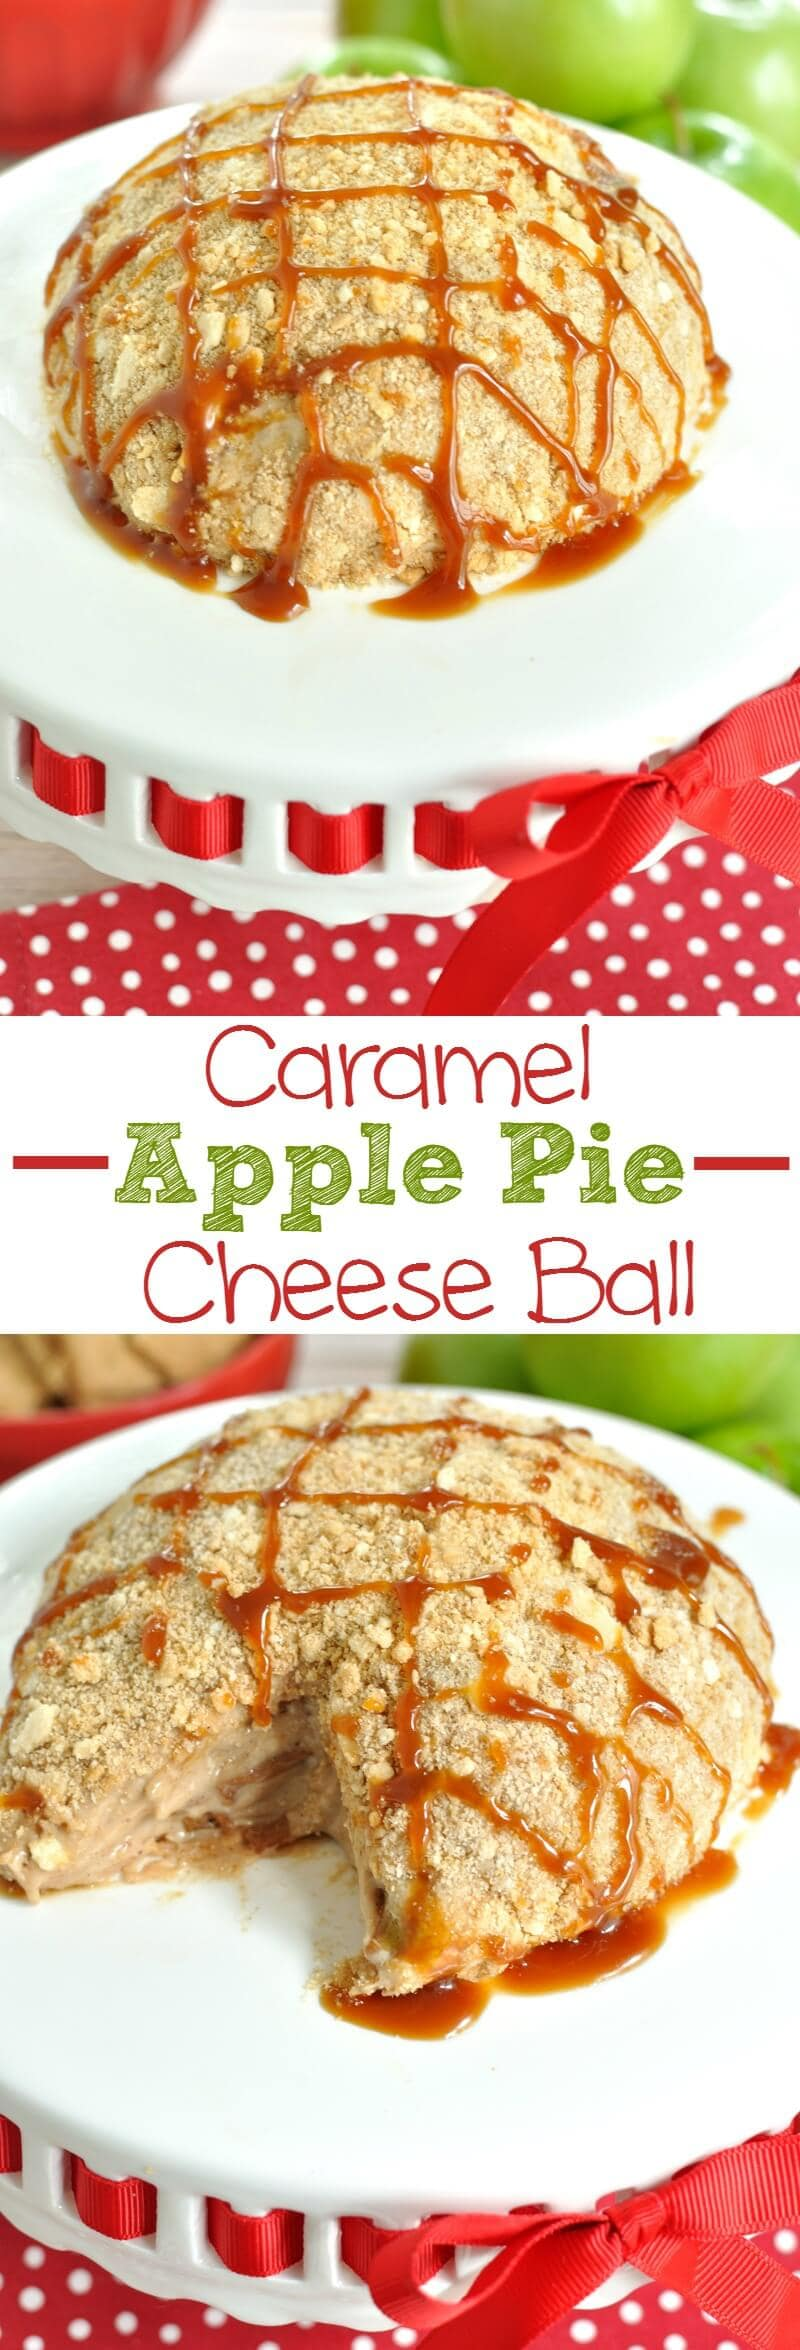 caramel-apple-pie-cheese-ball-collage